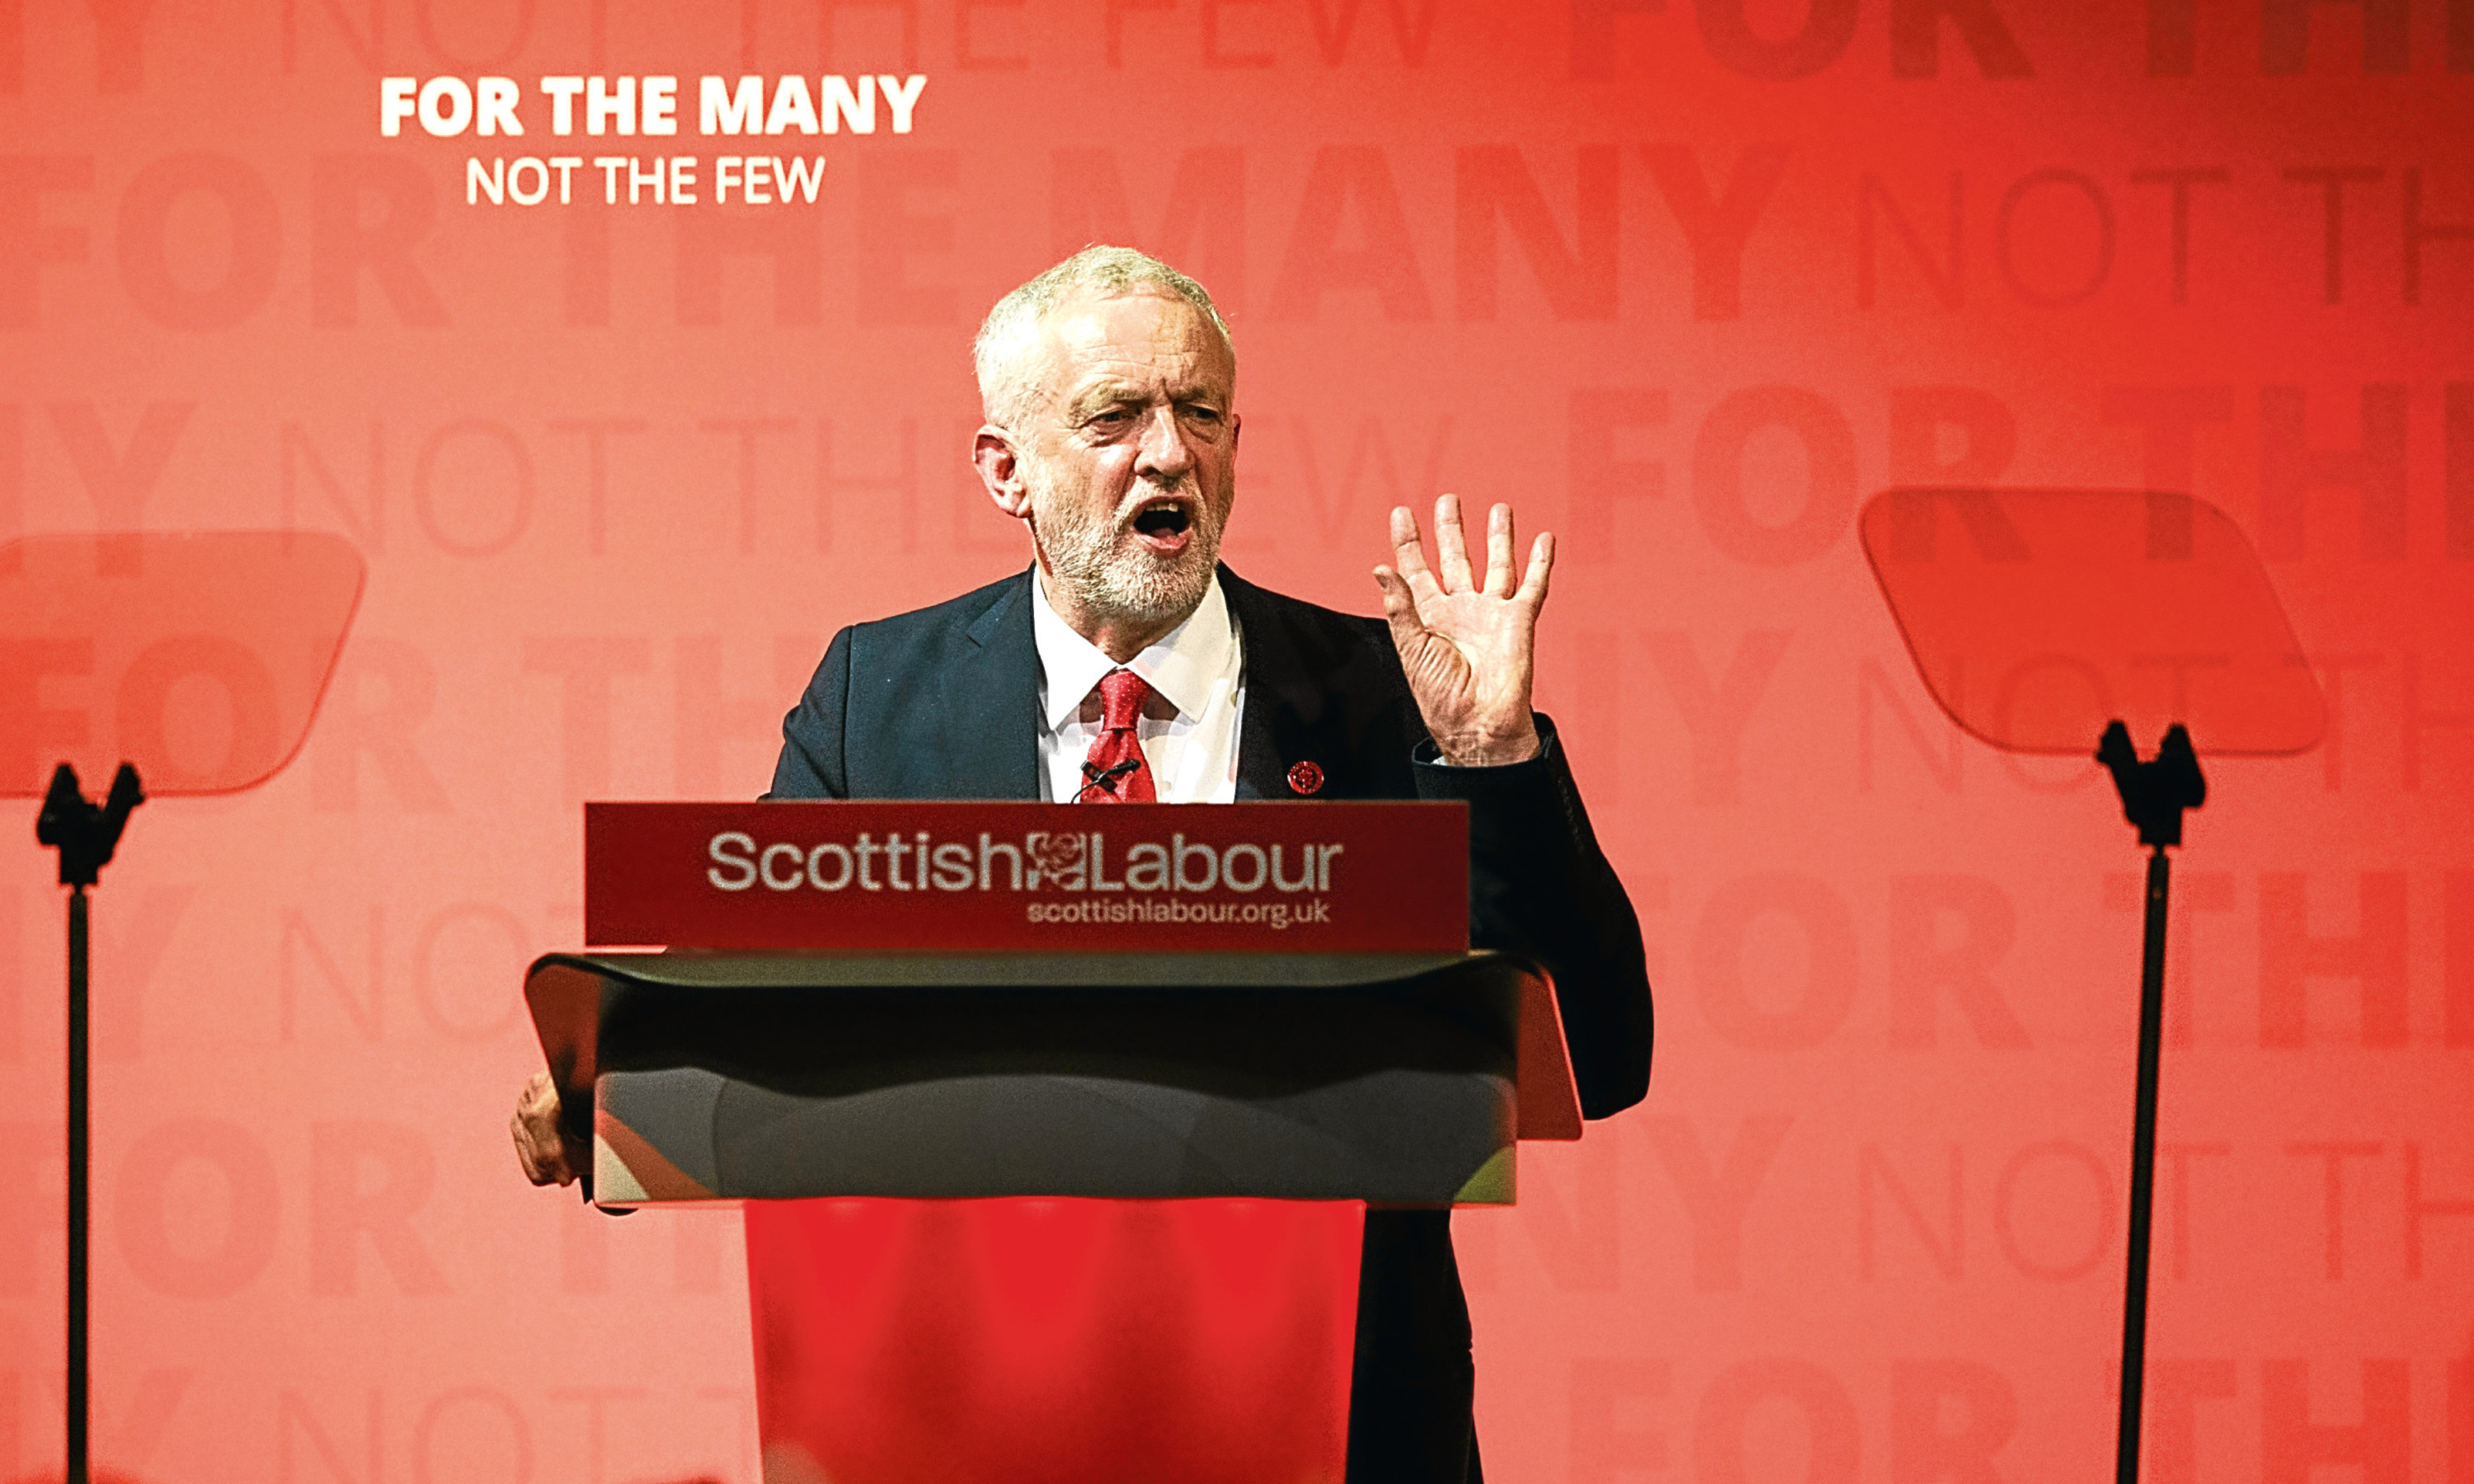 Jeremy Corbyn needs to take on new Labour ideas if the party is to again thrive in Scotland